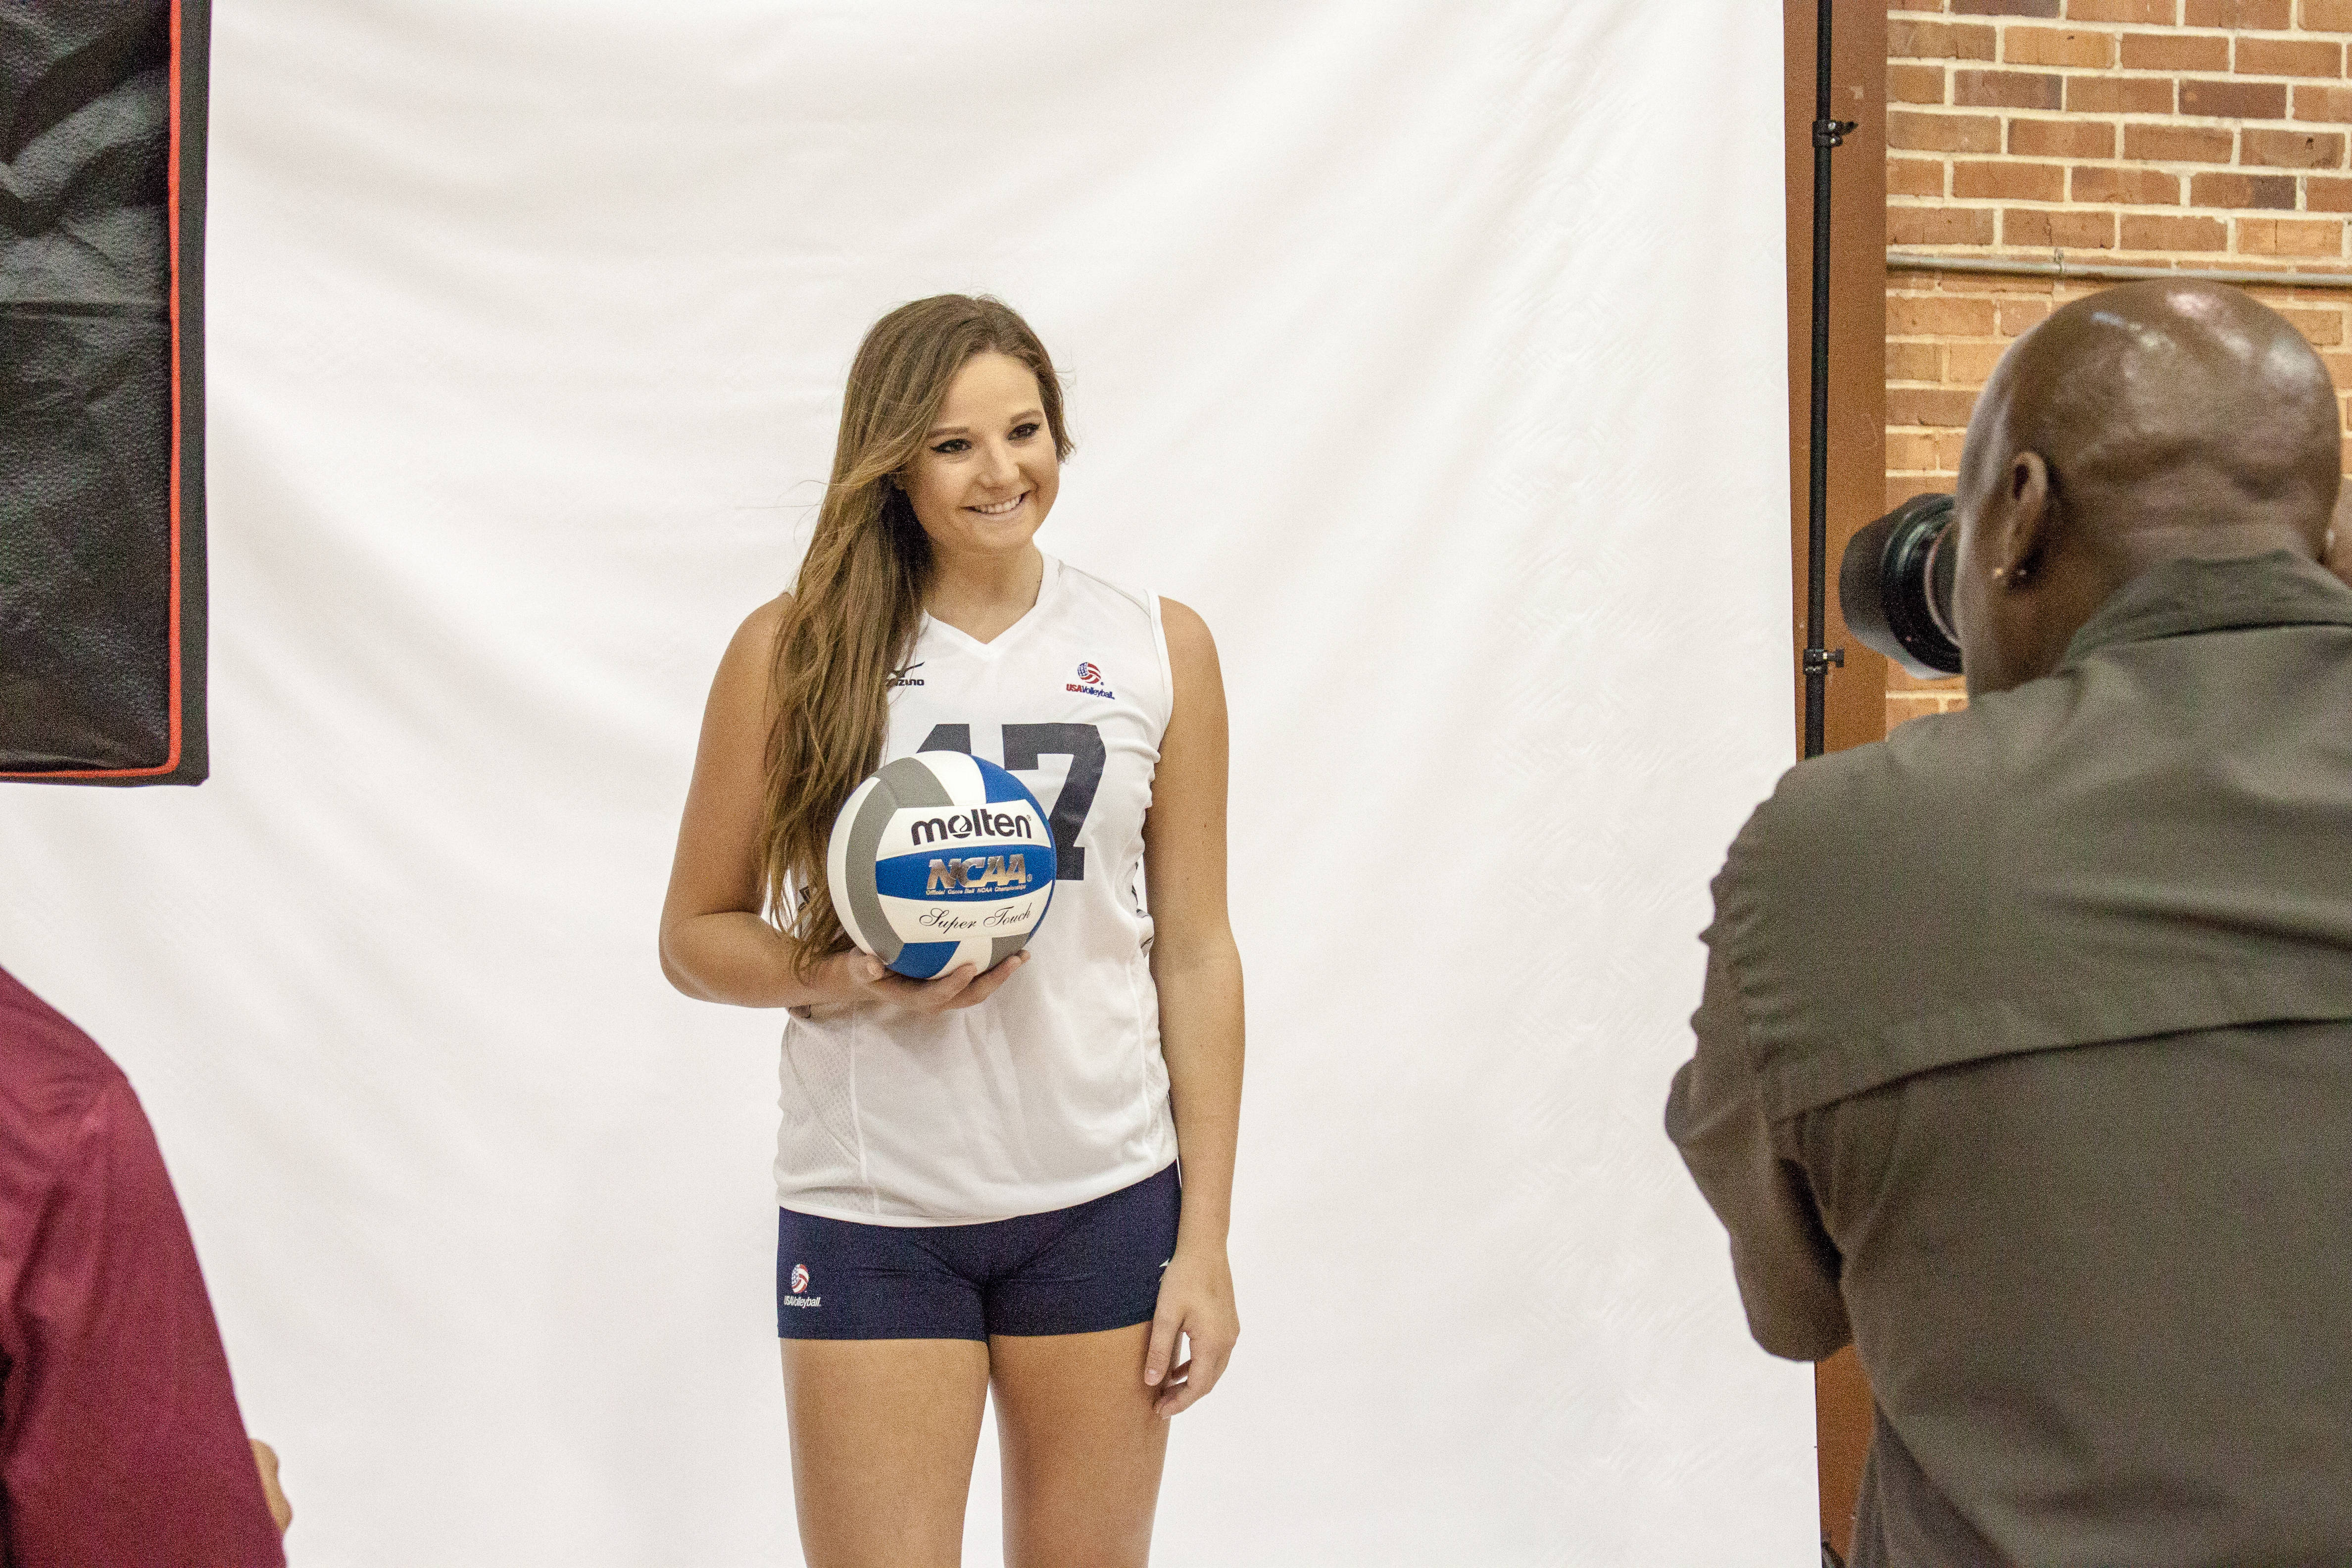 Nicole Walch trades her Seminole gear in for her USA Volleyball uniform.